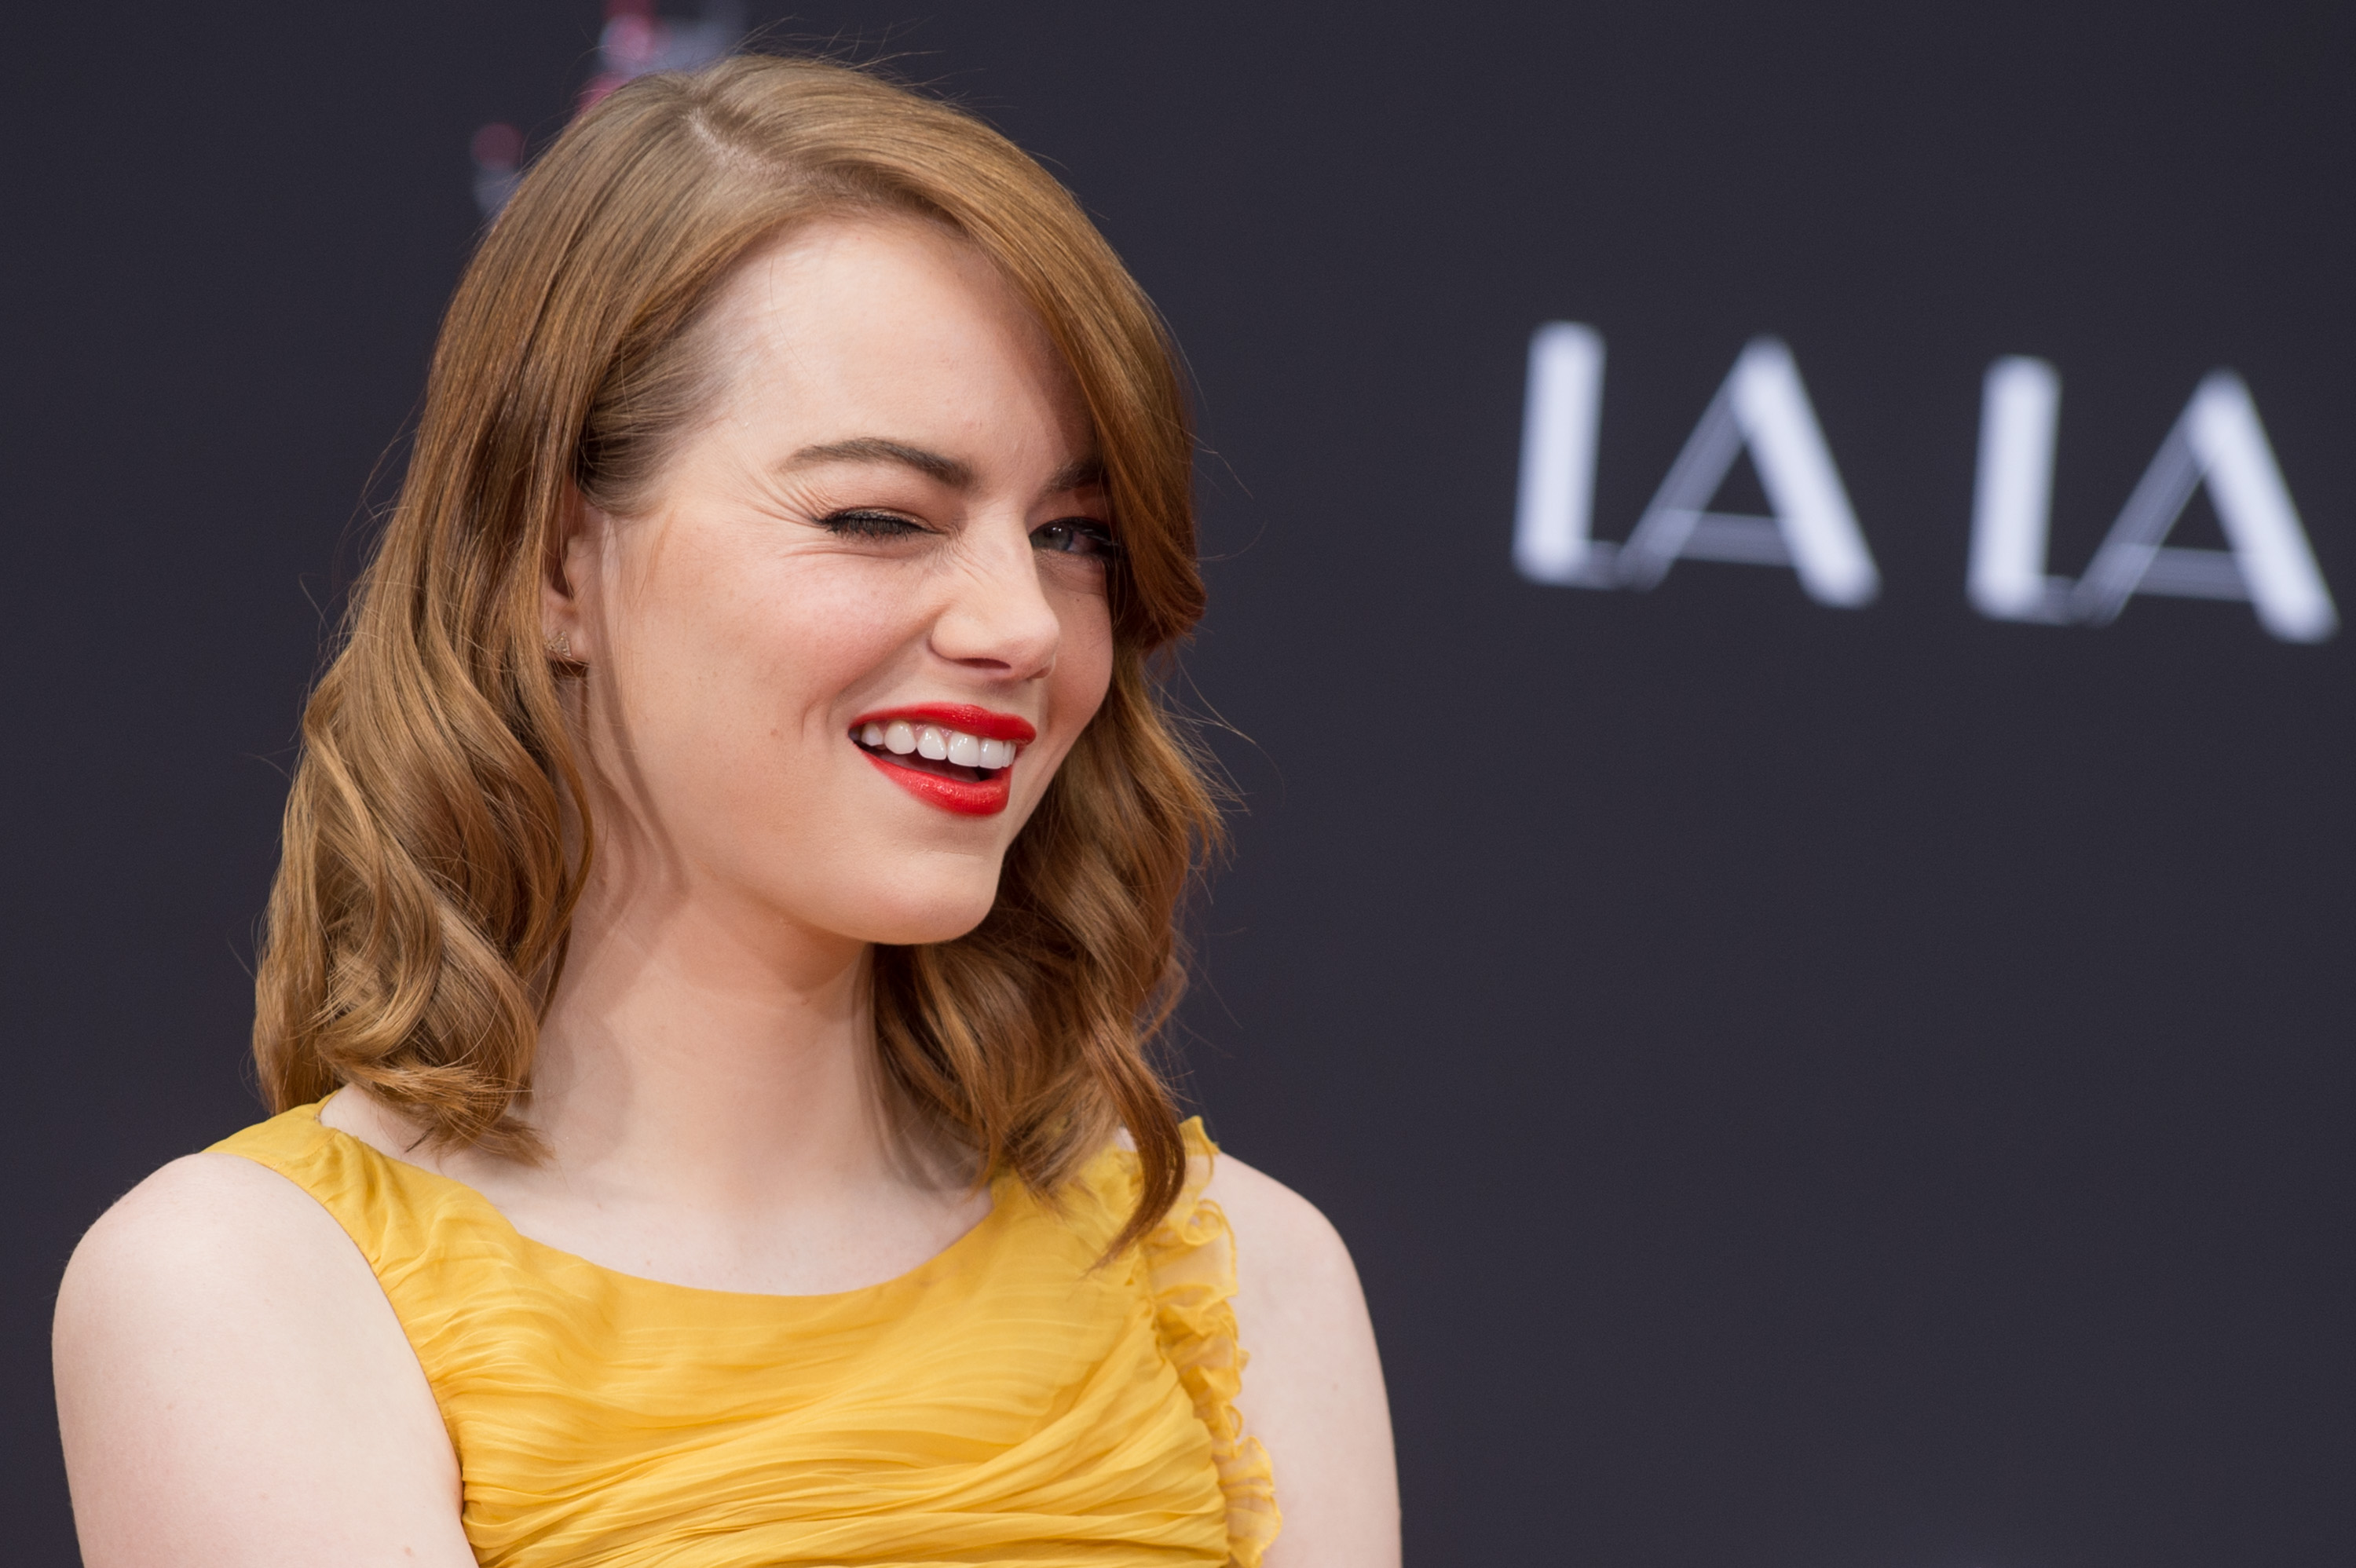 Here Are the 3 Workout Moves Emma Stone Does to Stay in Shape